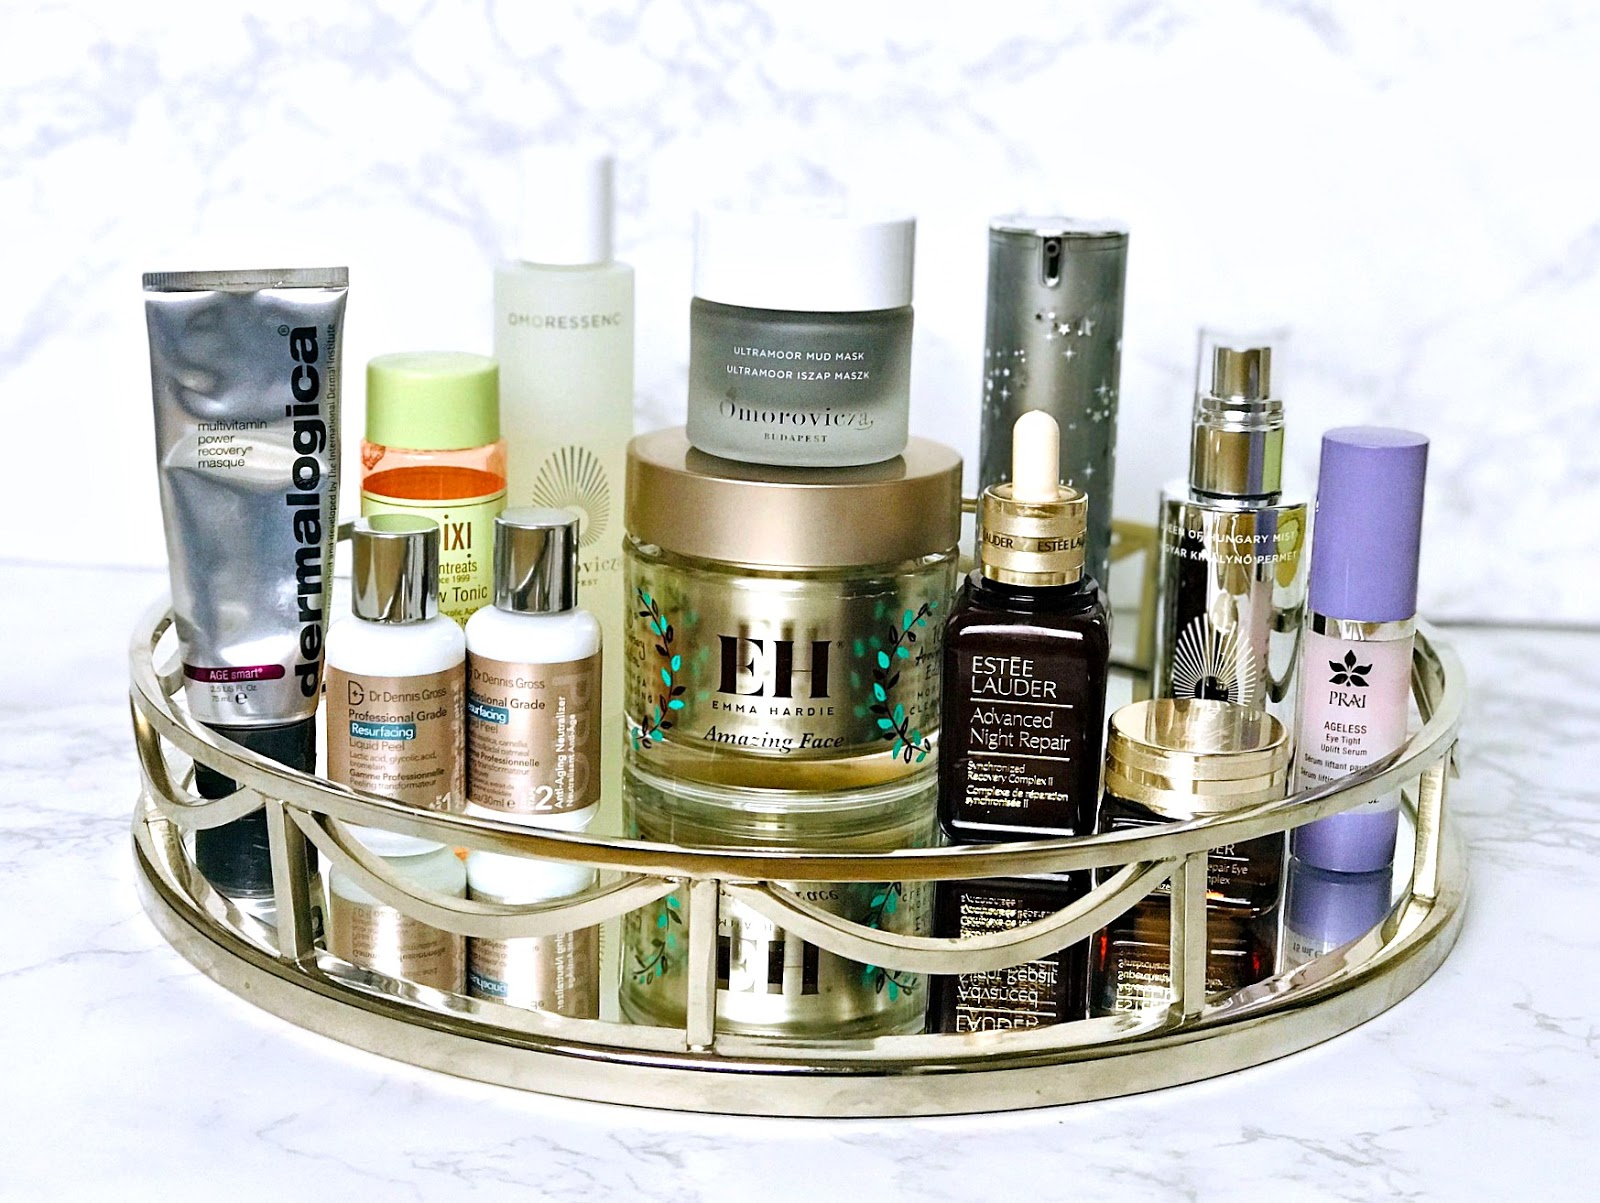 My HG skincare products (and a 20% discount code on most!), Discounts on luxury skincare